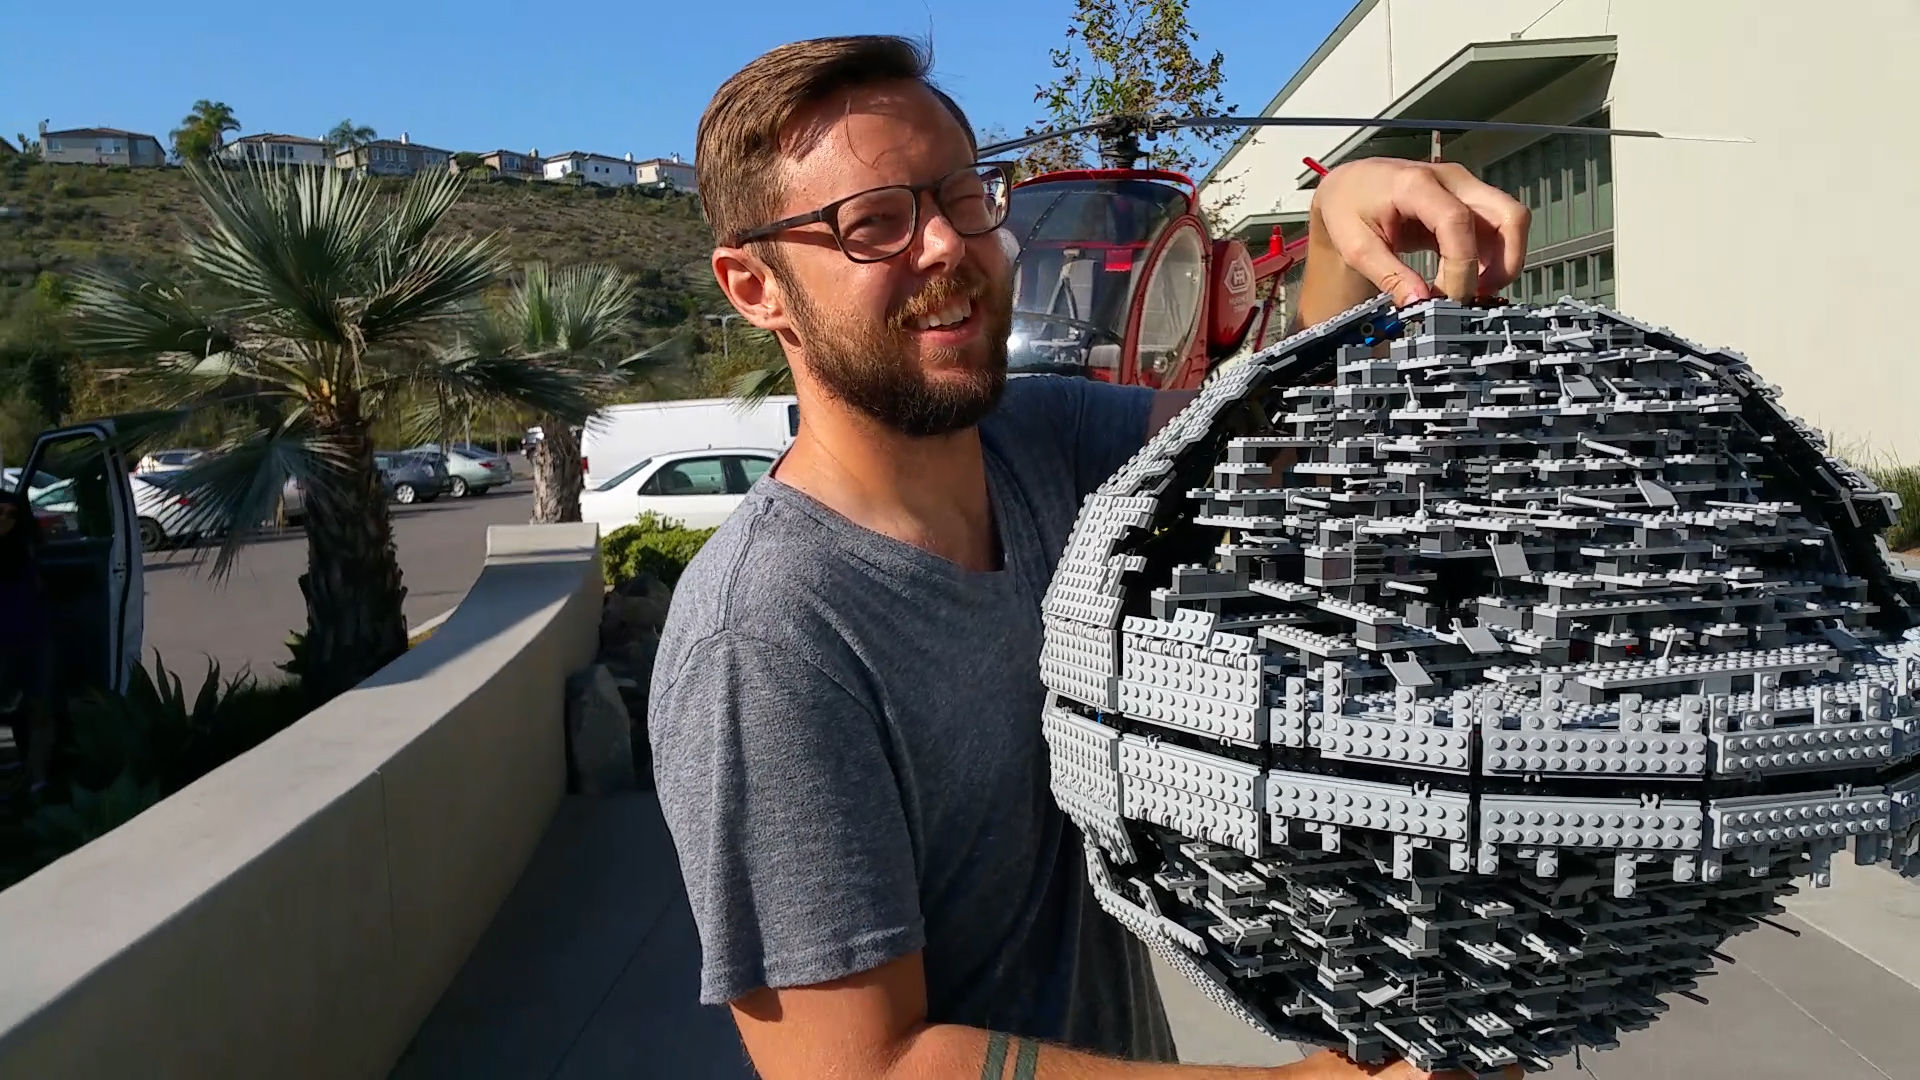 Behind the Scenes: 'Star Wars' Lego Death Star Gets Destroyed